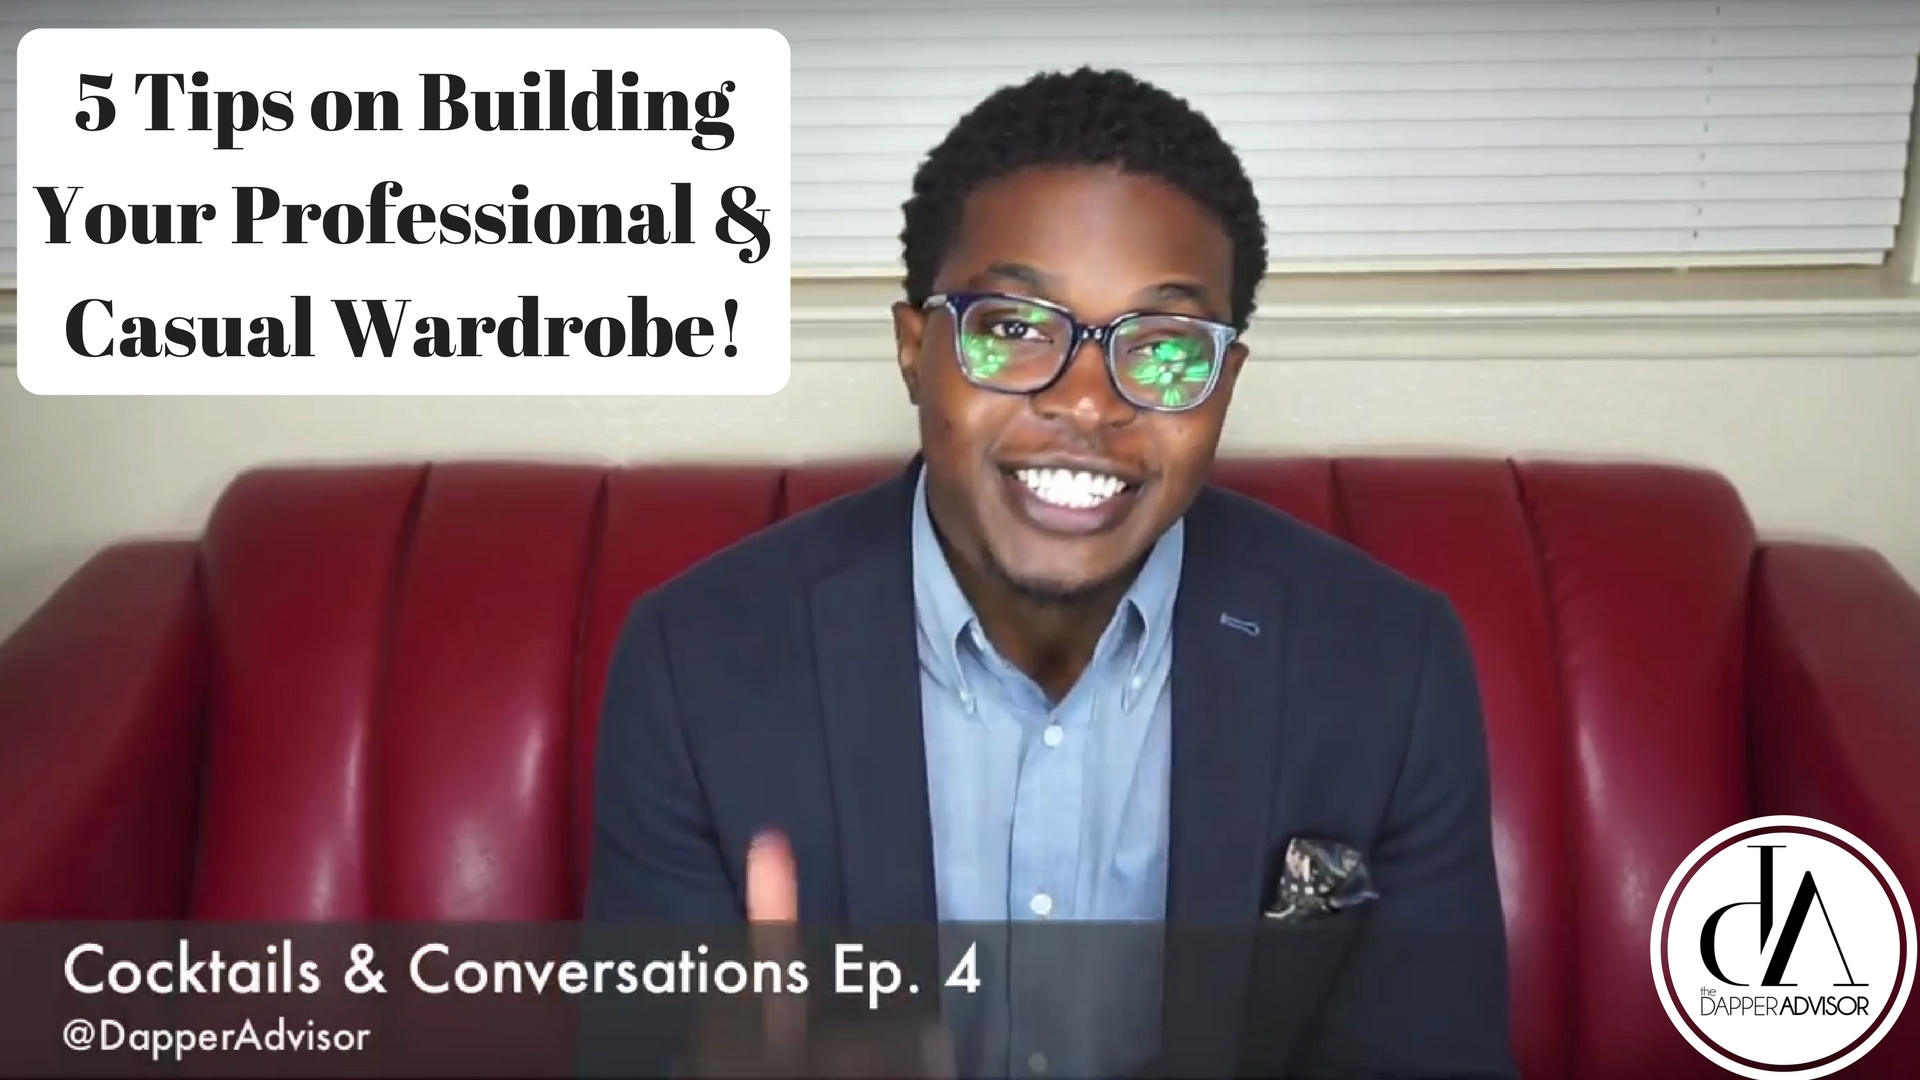 Cocktails & Conversations Ep. 4: Build Your Professional and Casual Wardrobe